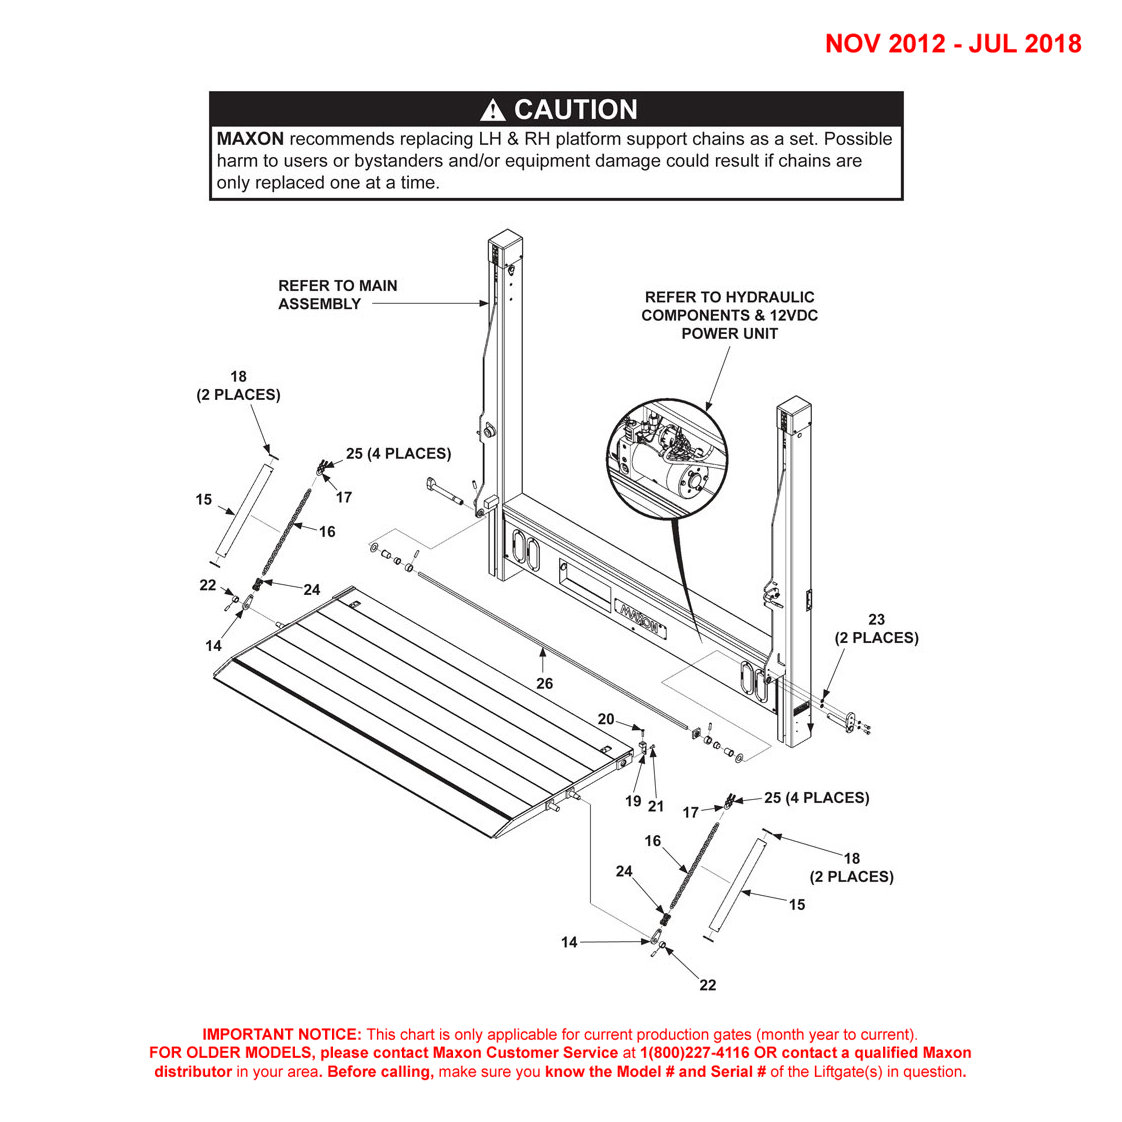 DMD (Nov 2012 - Jul 2018) Single Torsion Bar 1-Piece Platform Final Assembly Diagram - 2